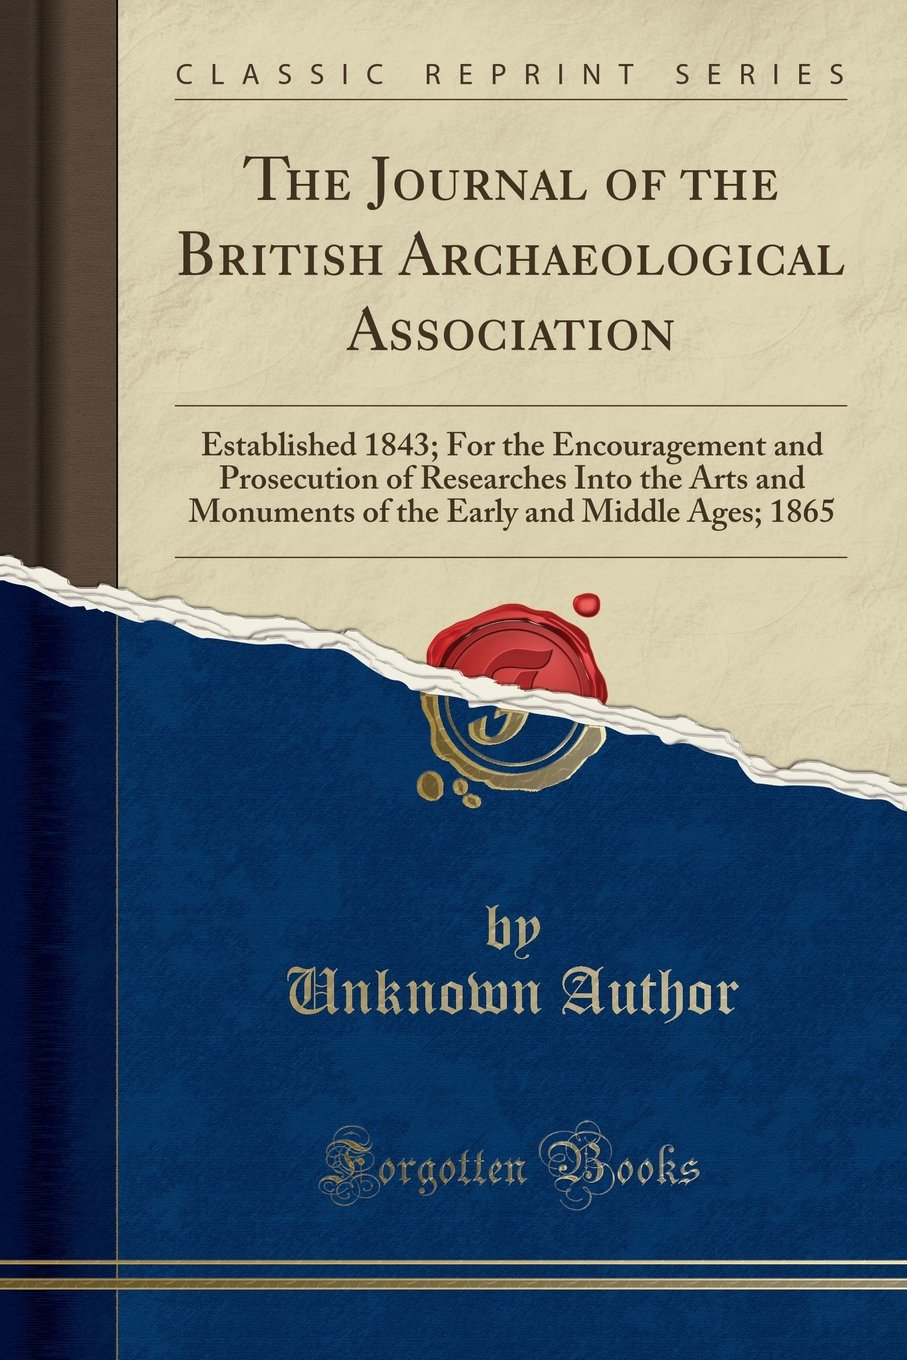 The Journal of the British Archaeological Association: Established 1843; For the Encouragement and Prosecution of Researches Into the Arts and ... Early and Middle Ages; 1865 (Classic Reprint) ebook